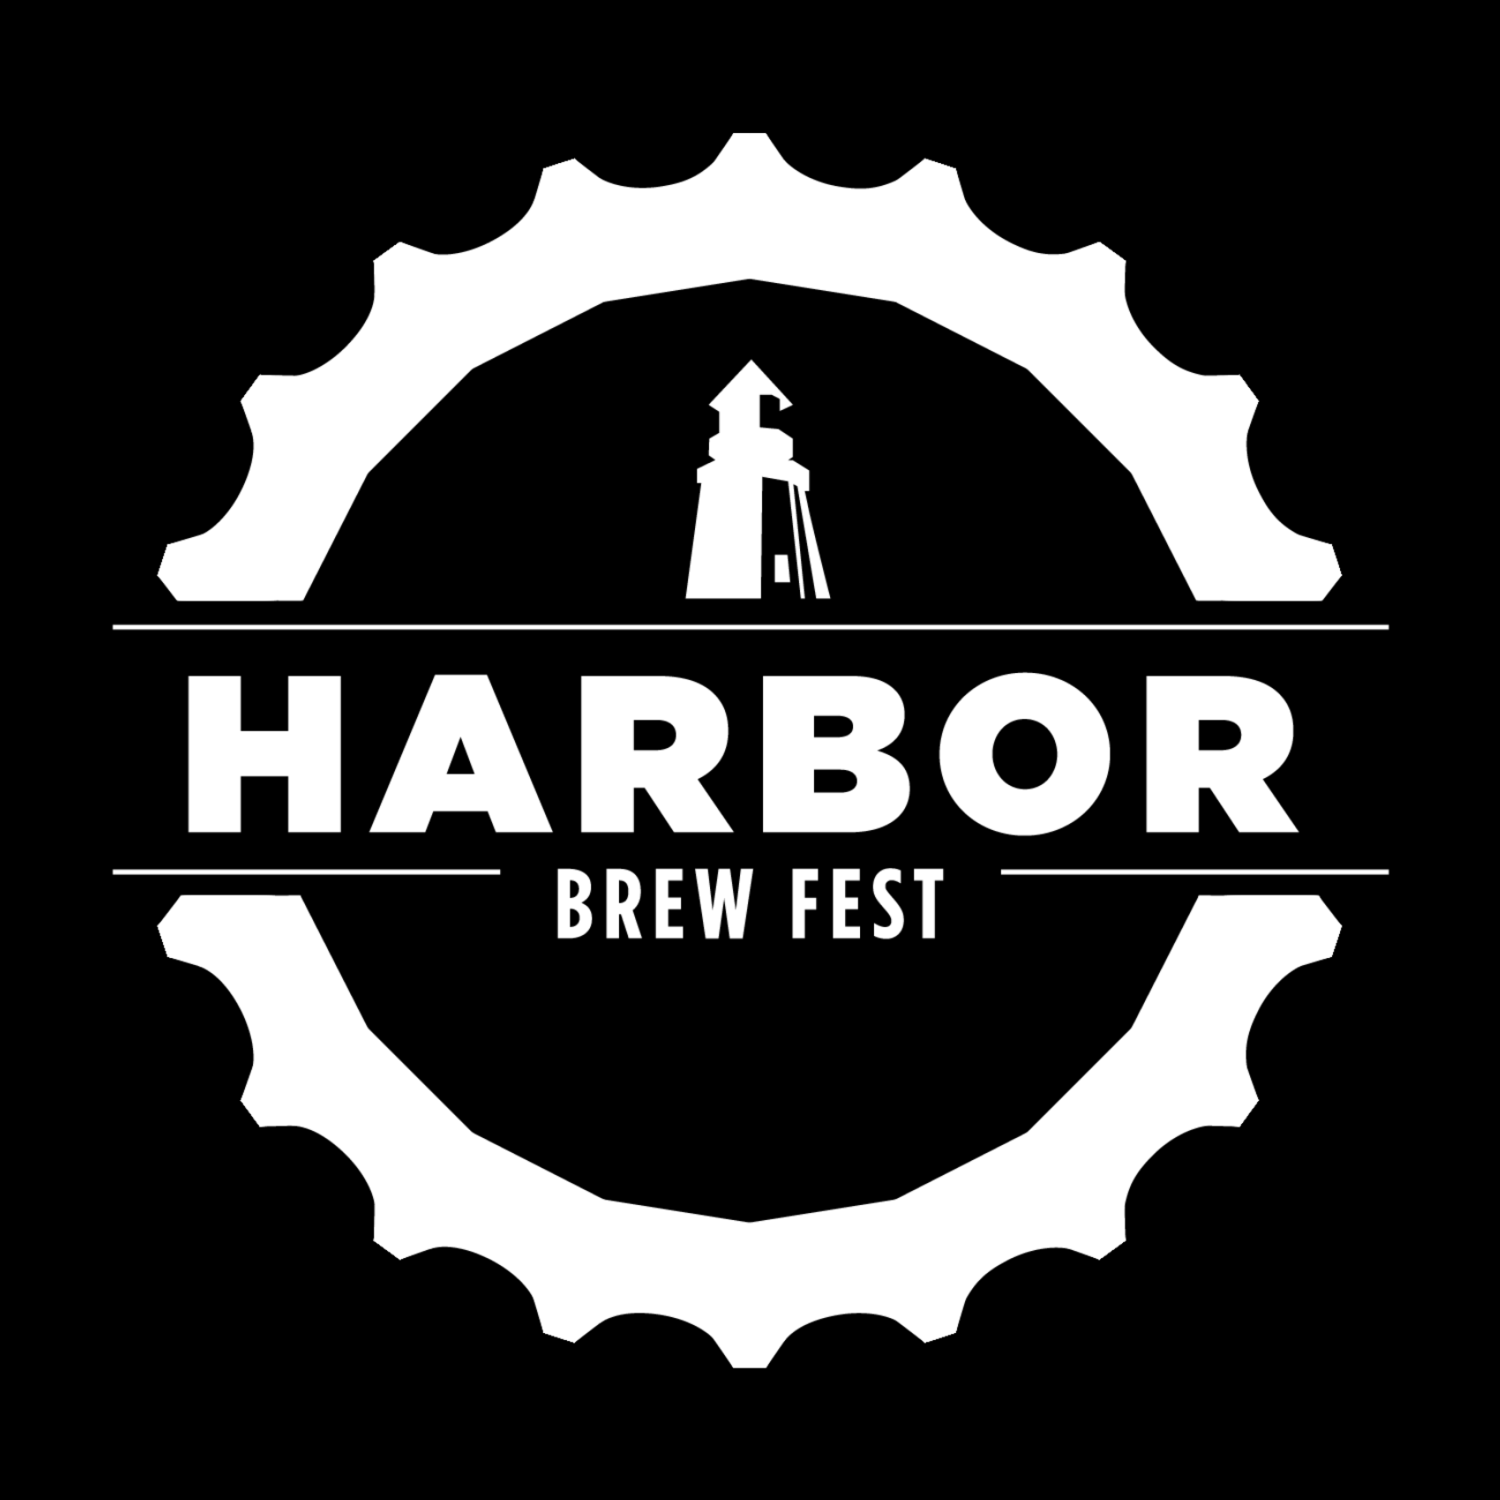 We will be at Harbor Brew Fest this weekend! 9/29/18 Get your tickets now!